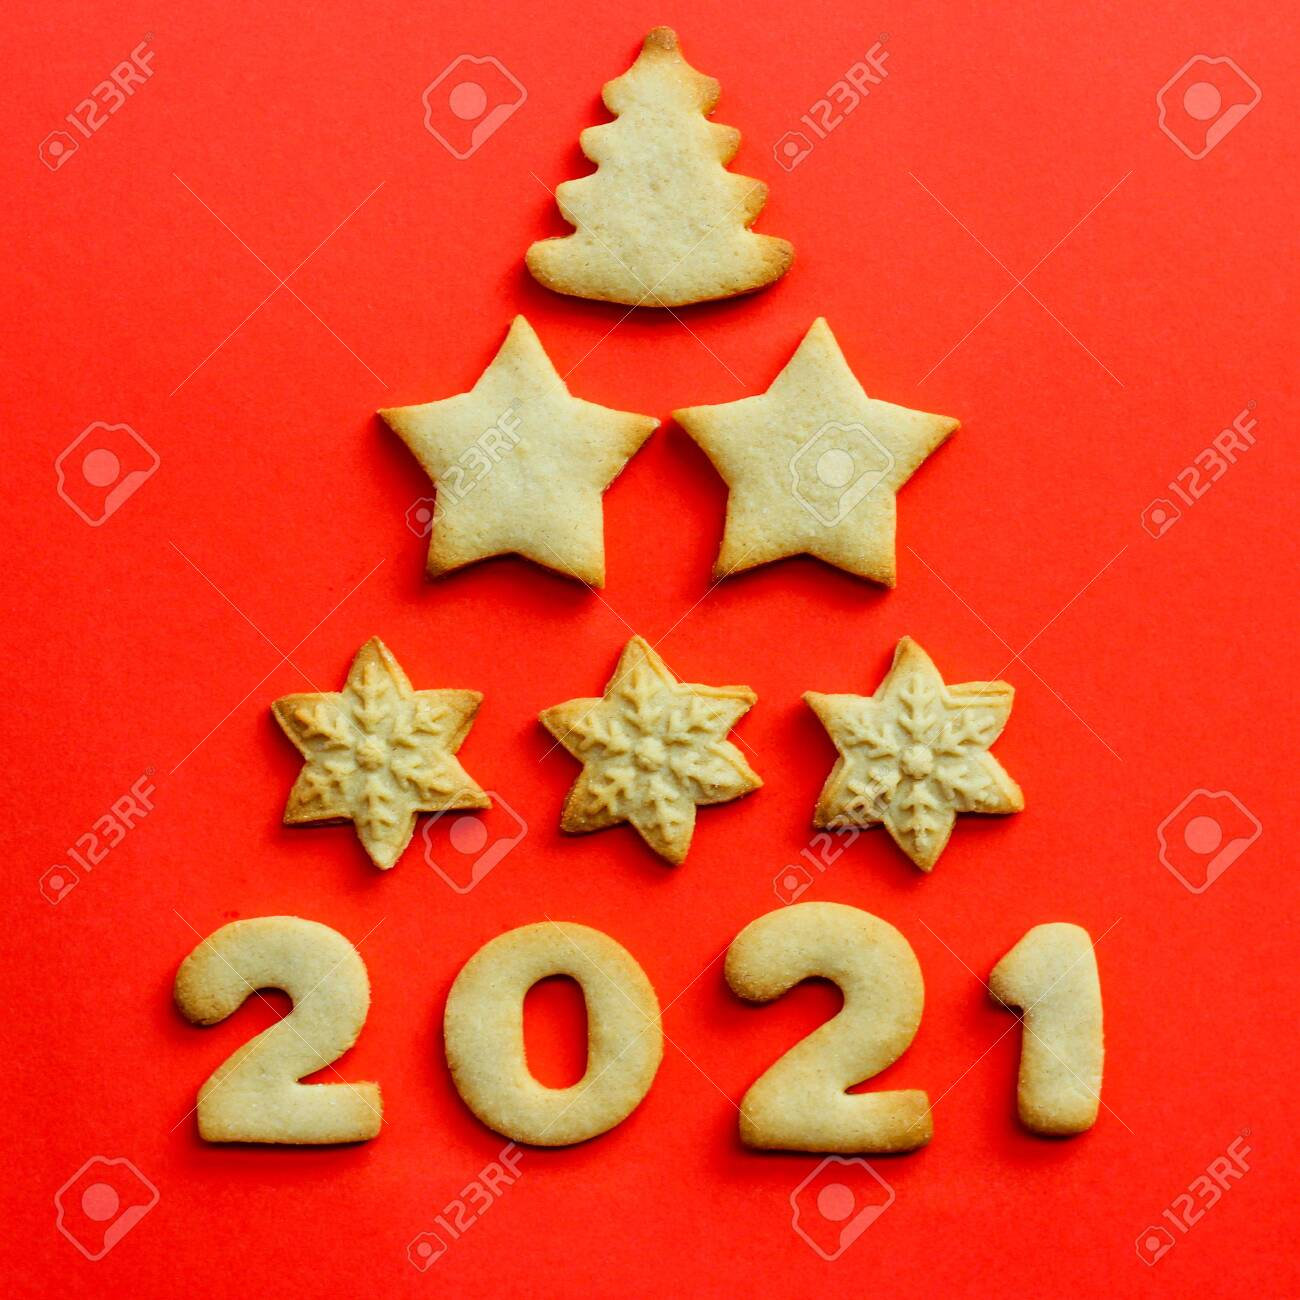 2021 Christmas Cookies Concept For 2021 Greeting Christmas Card Made Of Cookies On Stock Photo Picture And Royalty Free Image Image 156684556